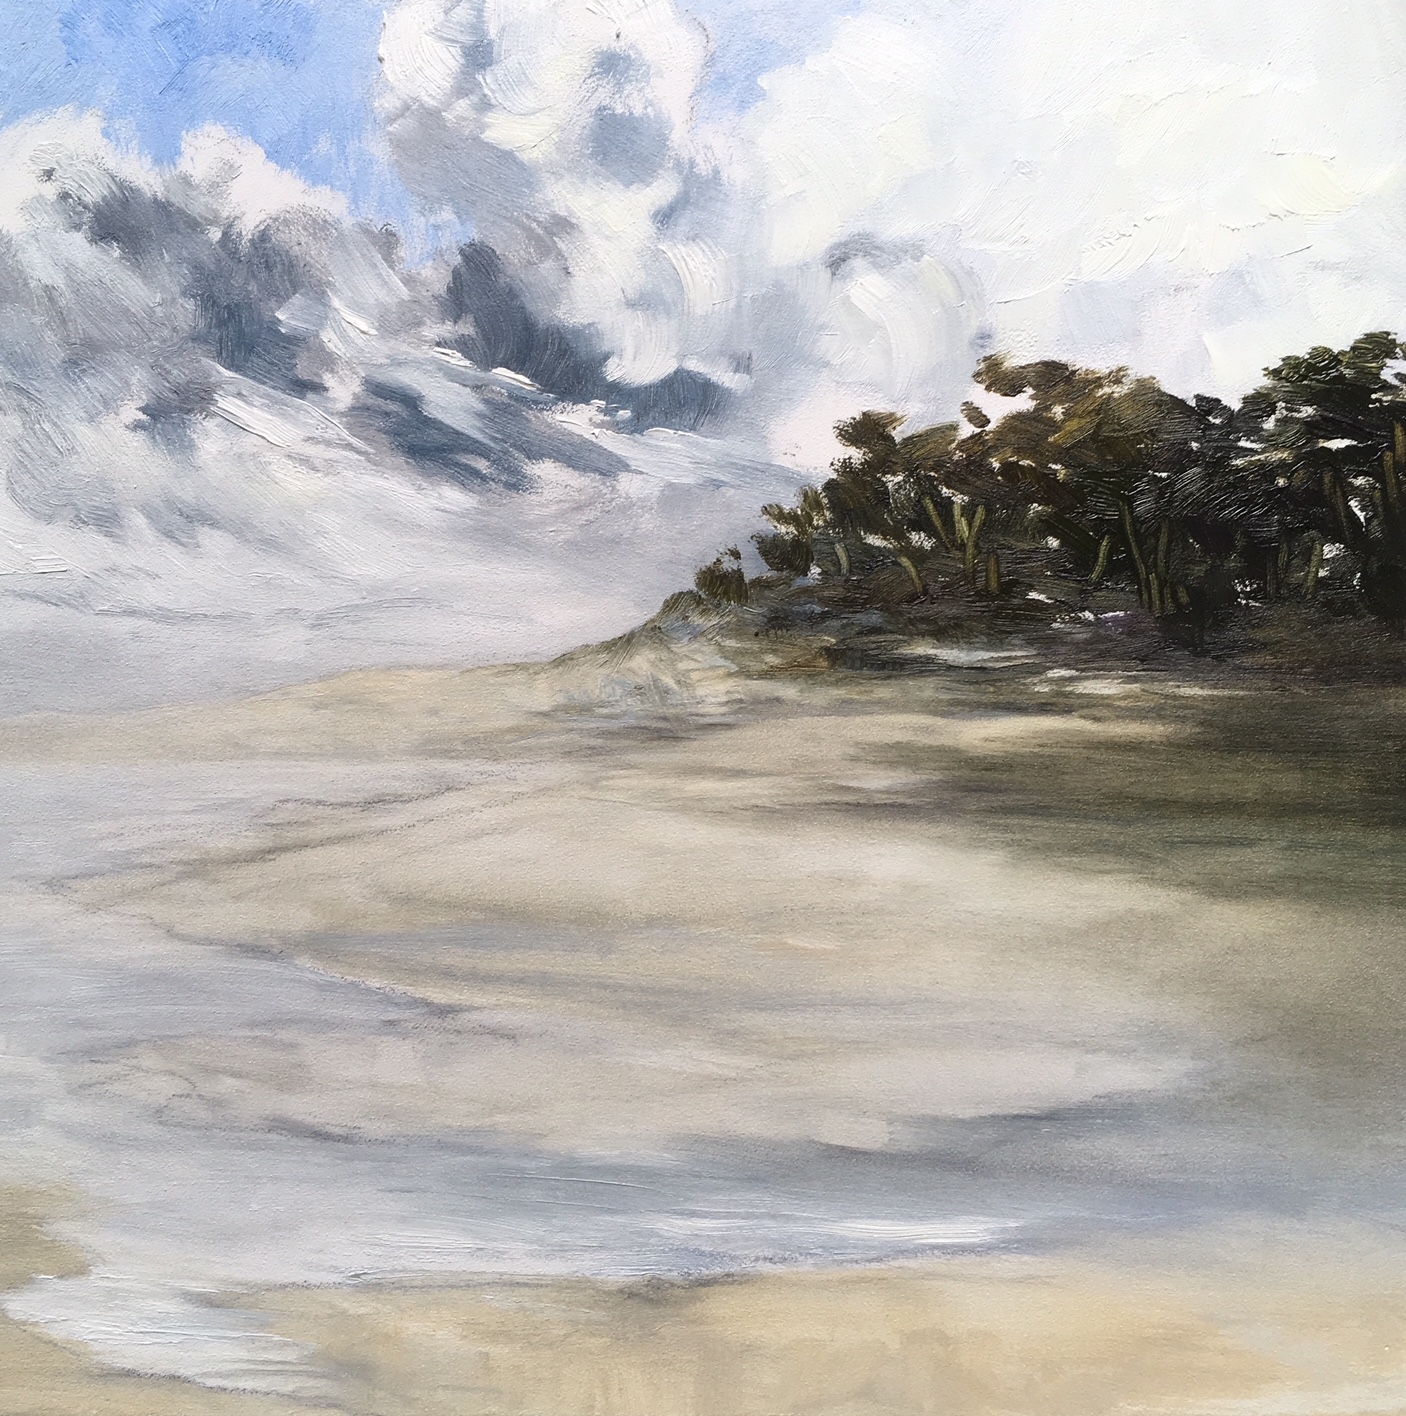 Shifting Sands, Oil on board, 30 x 30cm, Sold